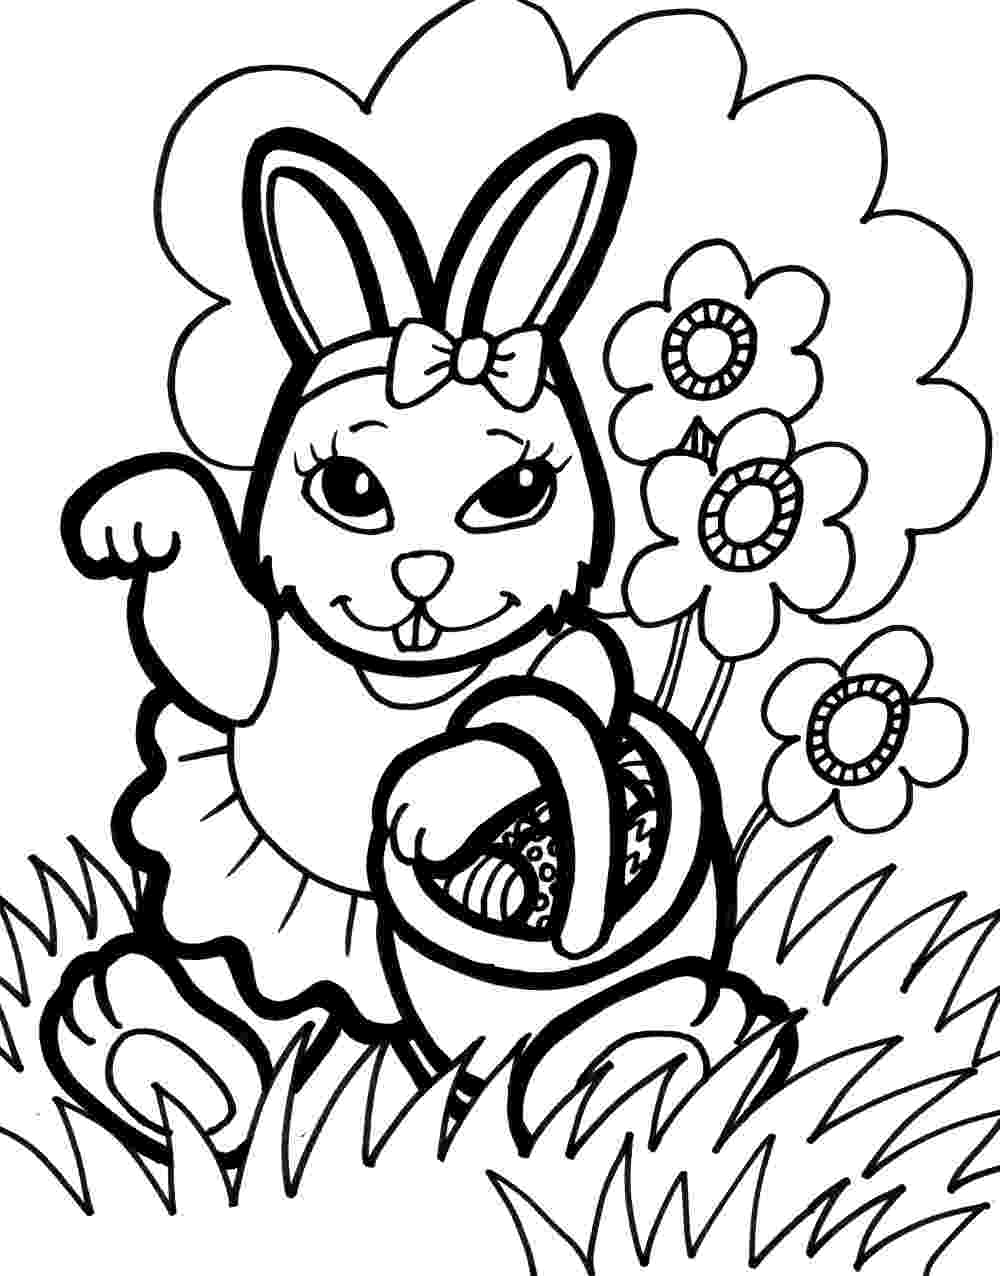 coloring pages of bunnies bunny coloring pages best coloring pages for kids coloring pages of bunnies